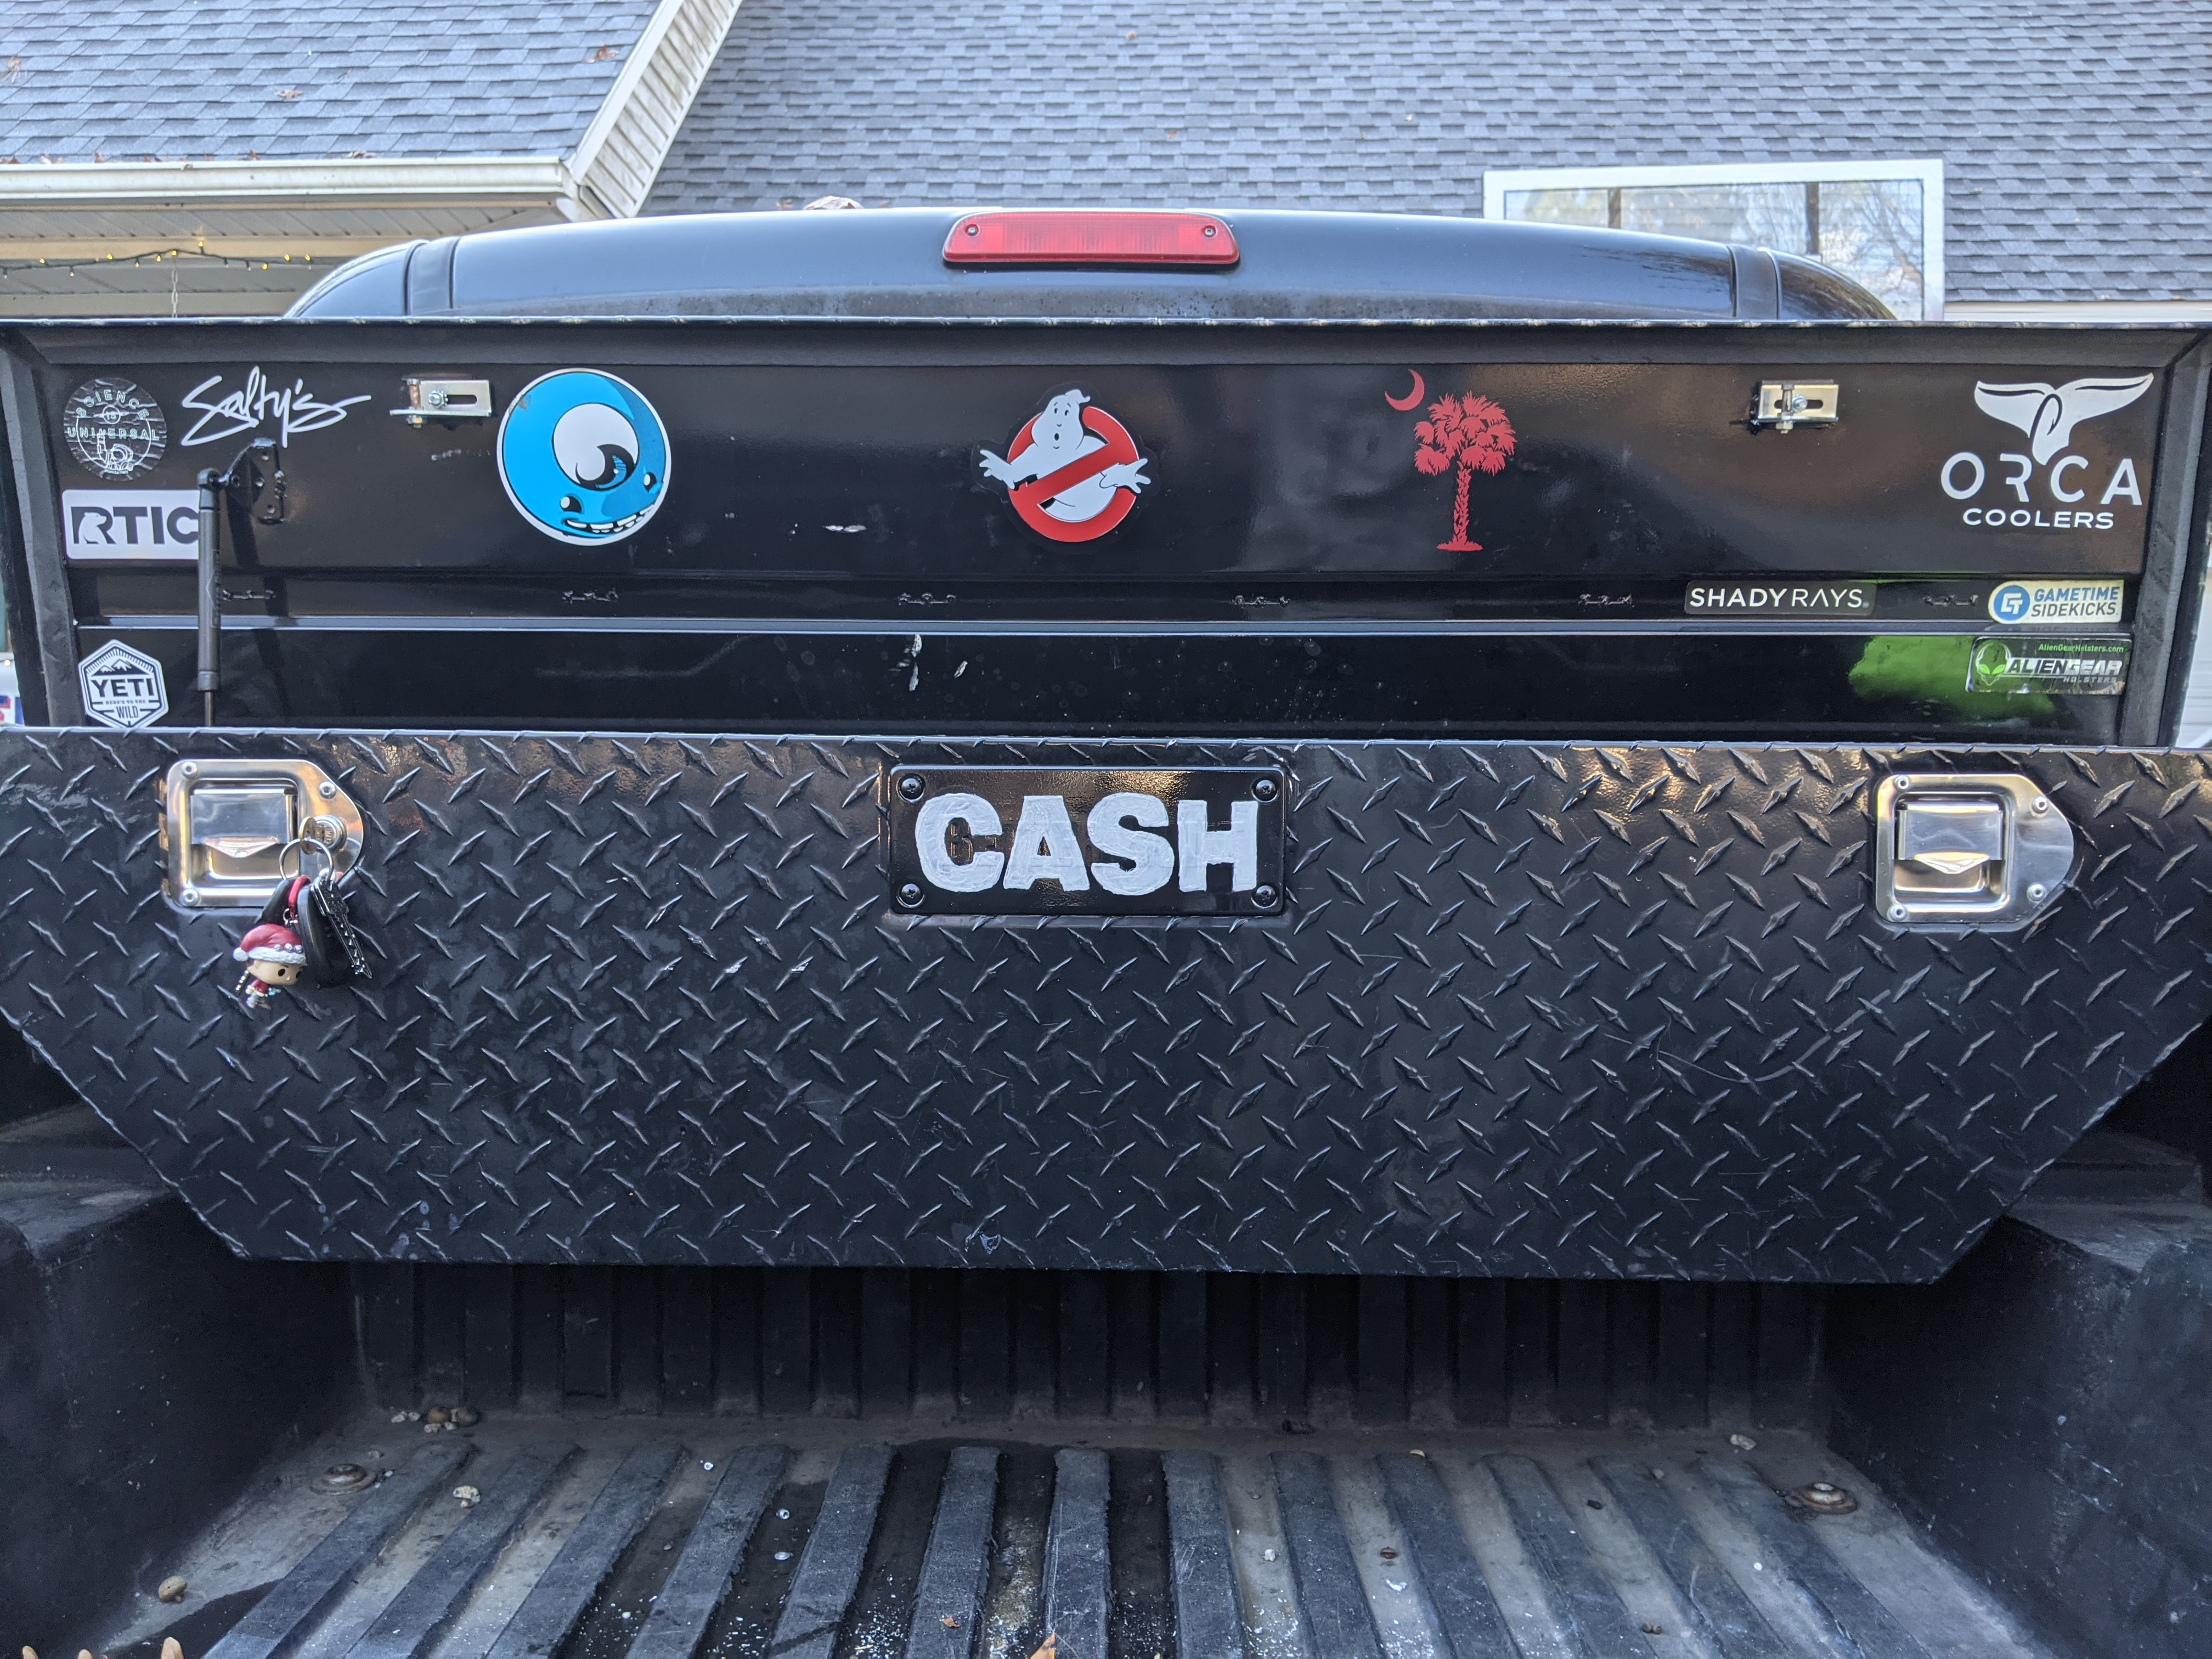 CASH toolbox plate in place.